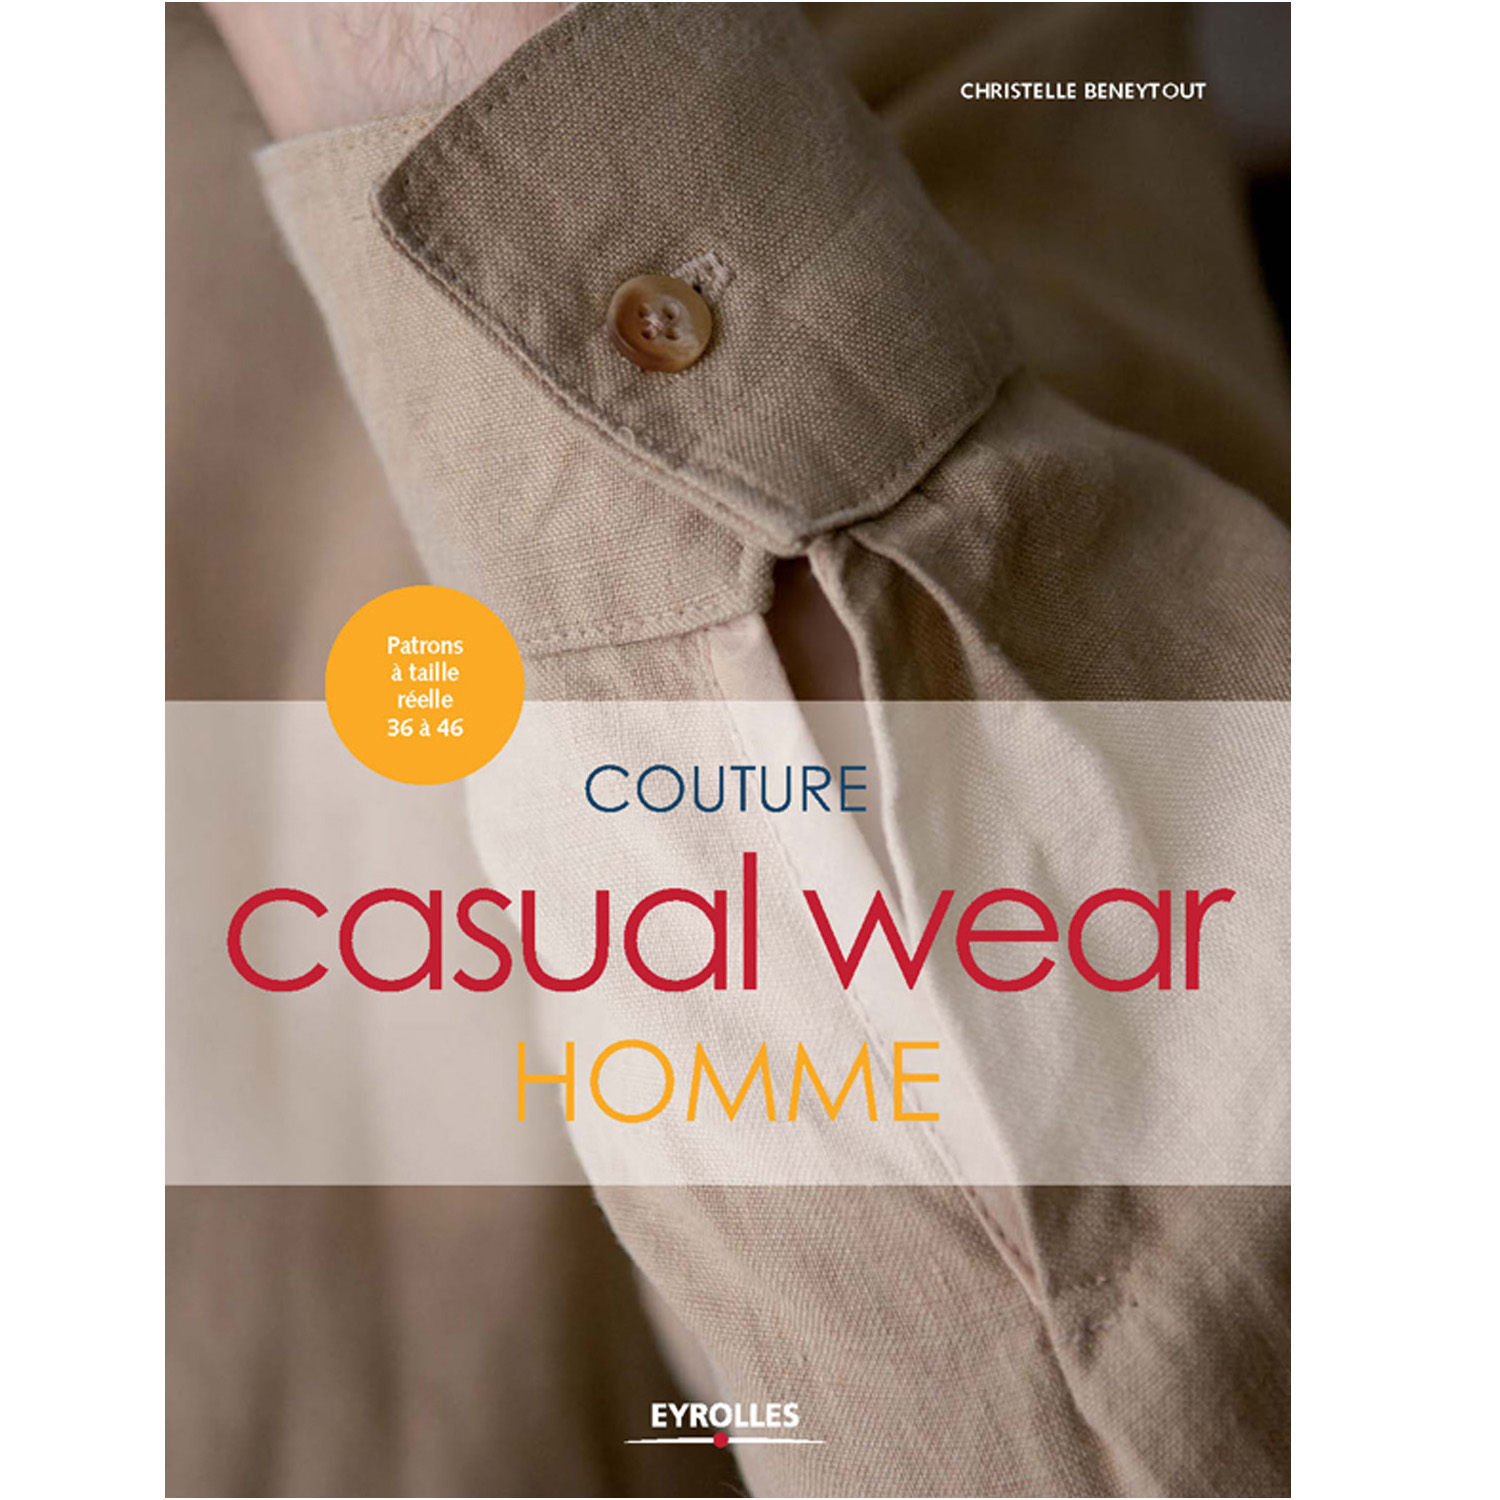 Couture casual wear -homme Image